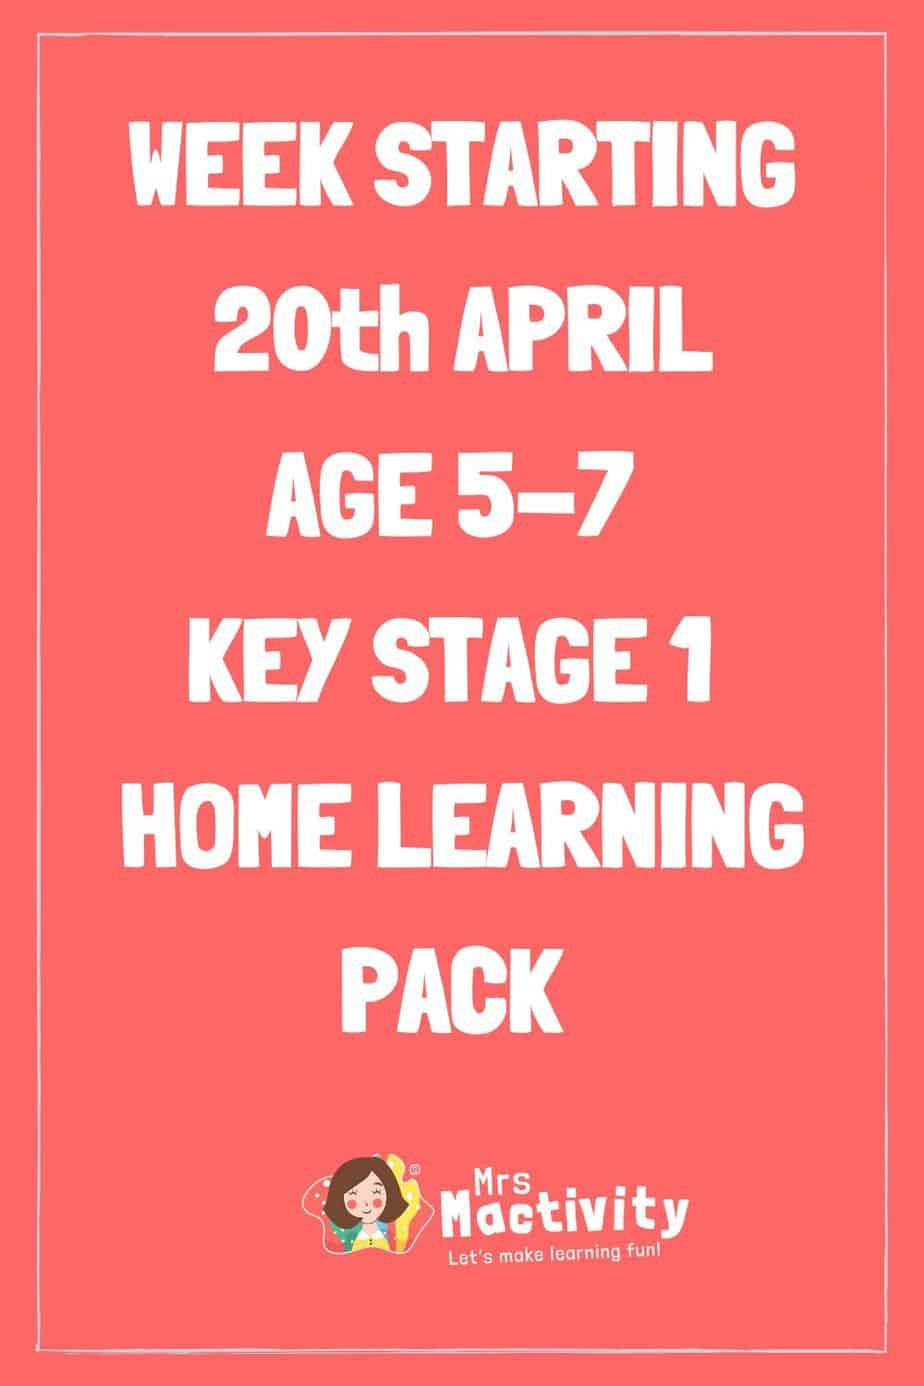 20th April Early Years (Age 5-7) Weekly Home Learning Pack